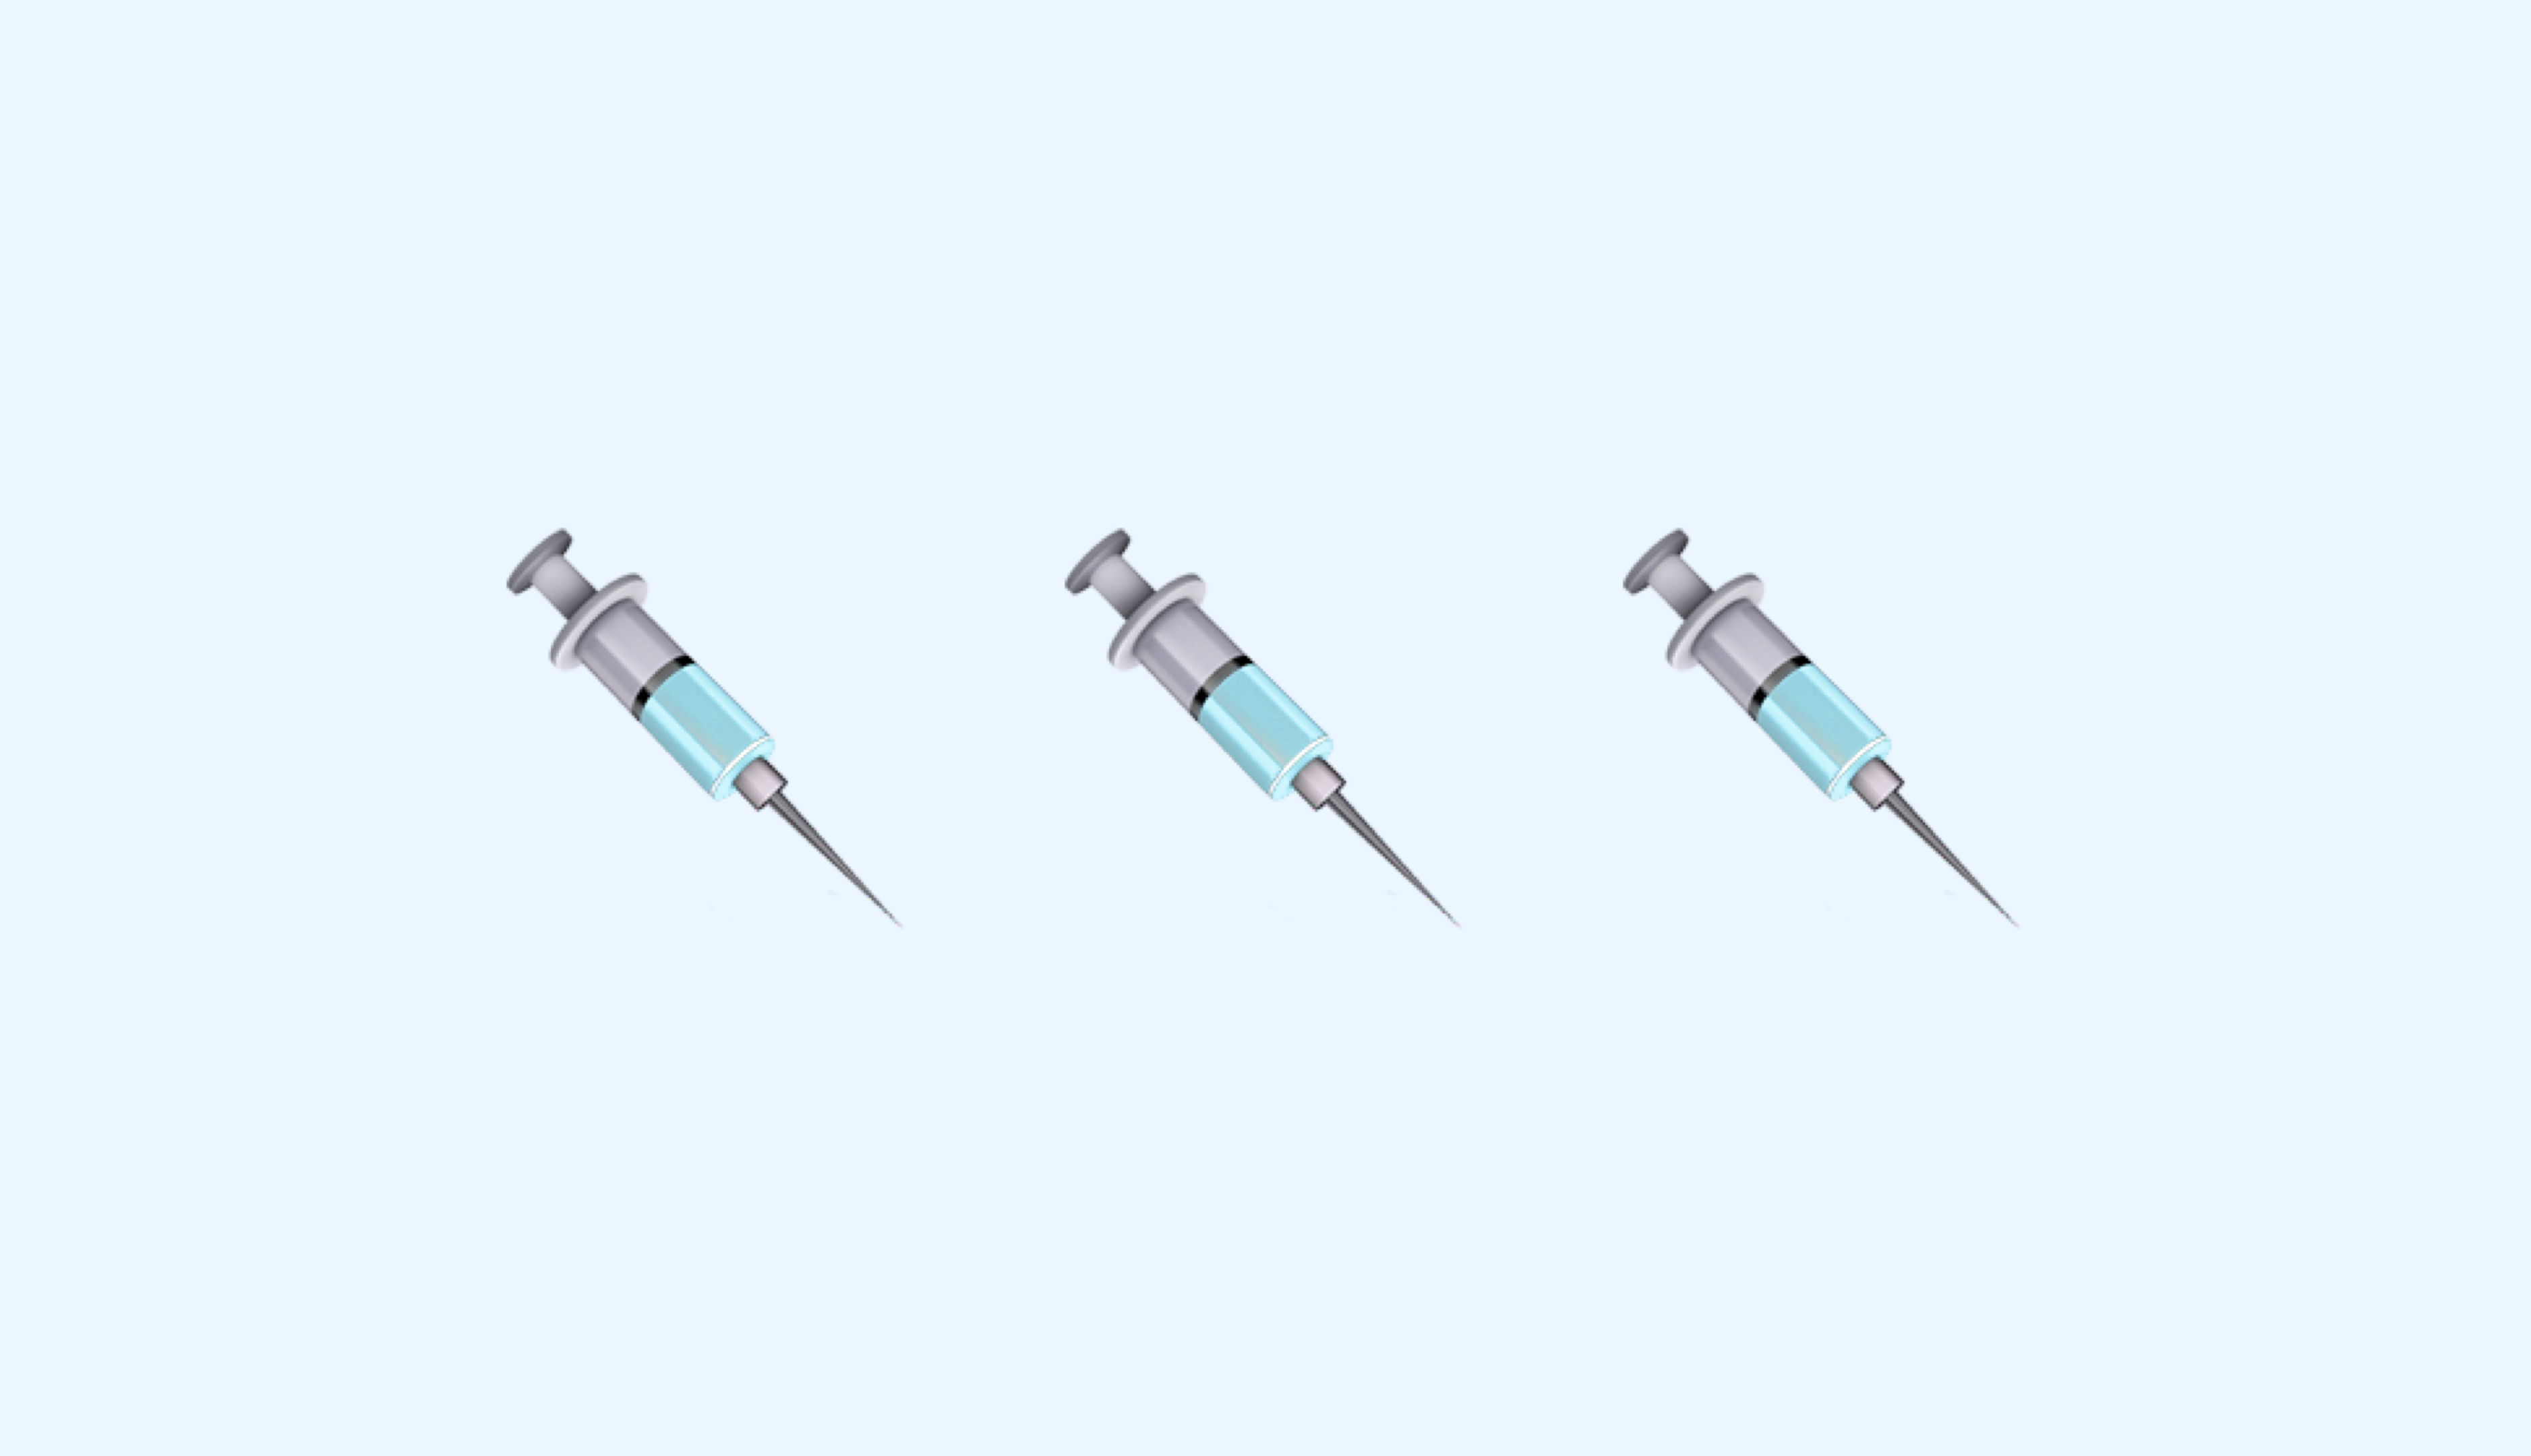 syringe emoji on blue background